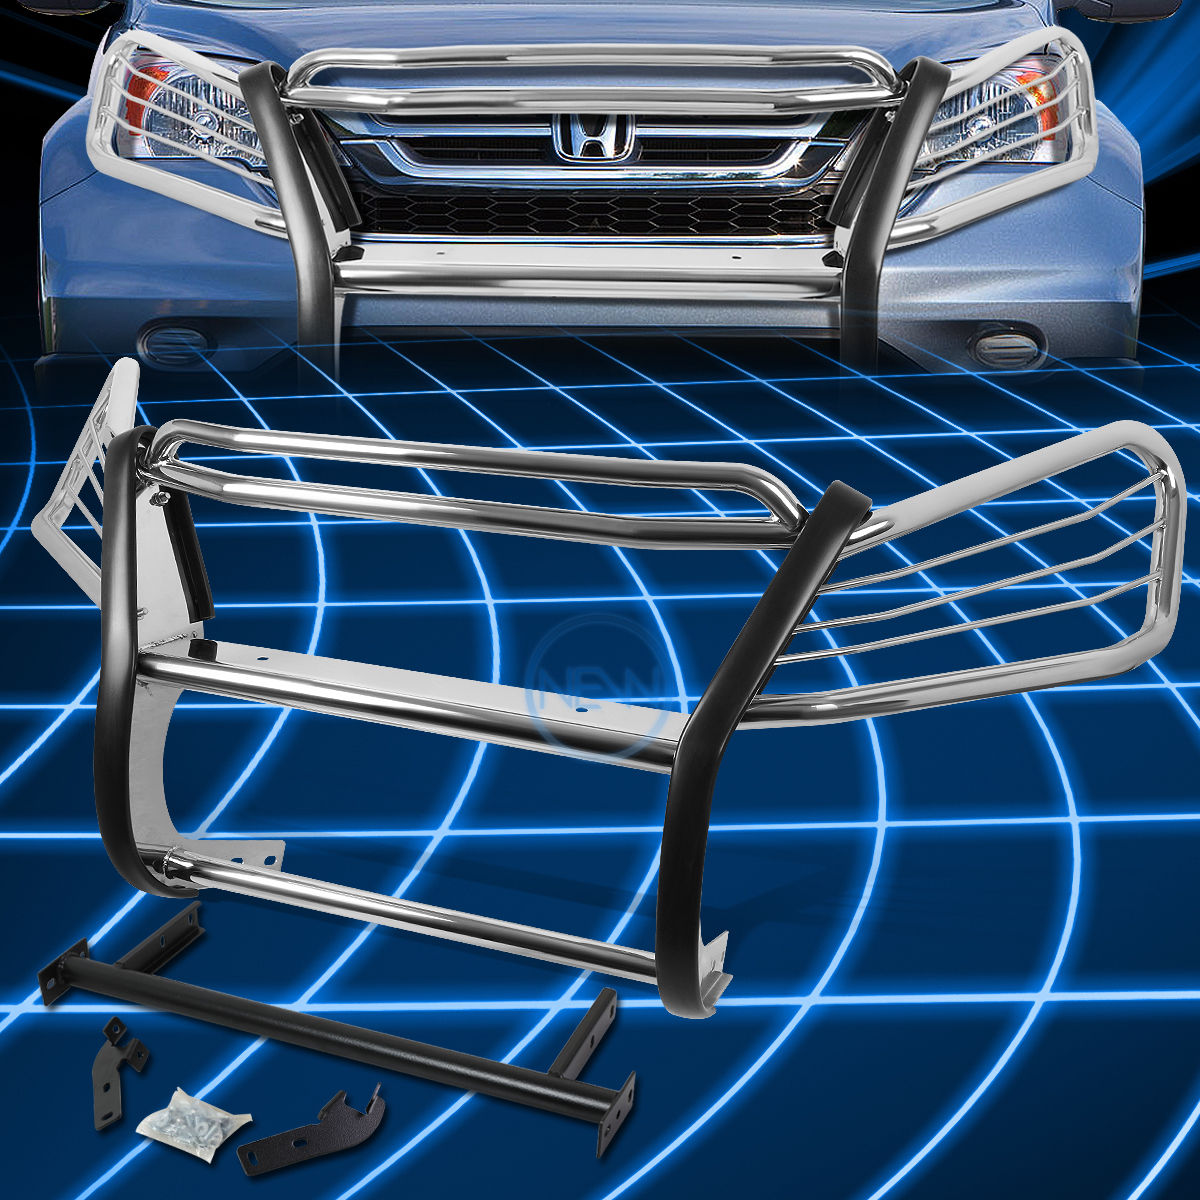 グリル クロームブラシバンパープロテクターグリルガード(ホンダCRV / CR-V RE SUV) Chrome Brush Bumper Protector Grille Guard for 2007-2011 Honda CRV/CR-V RE SUV